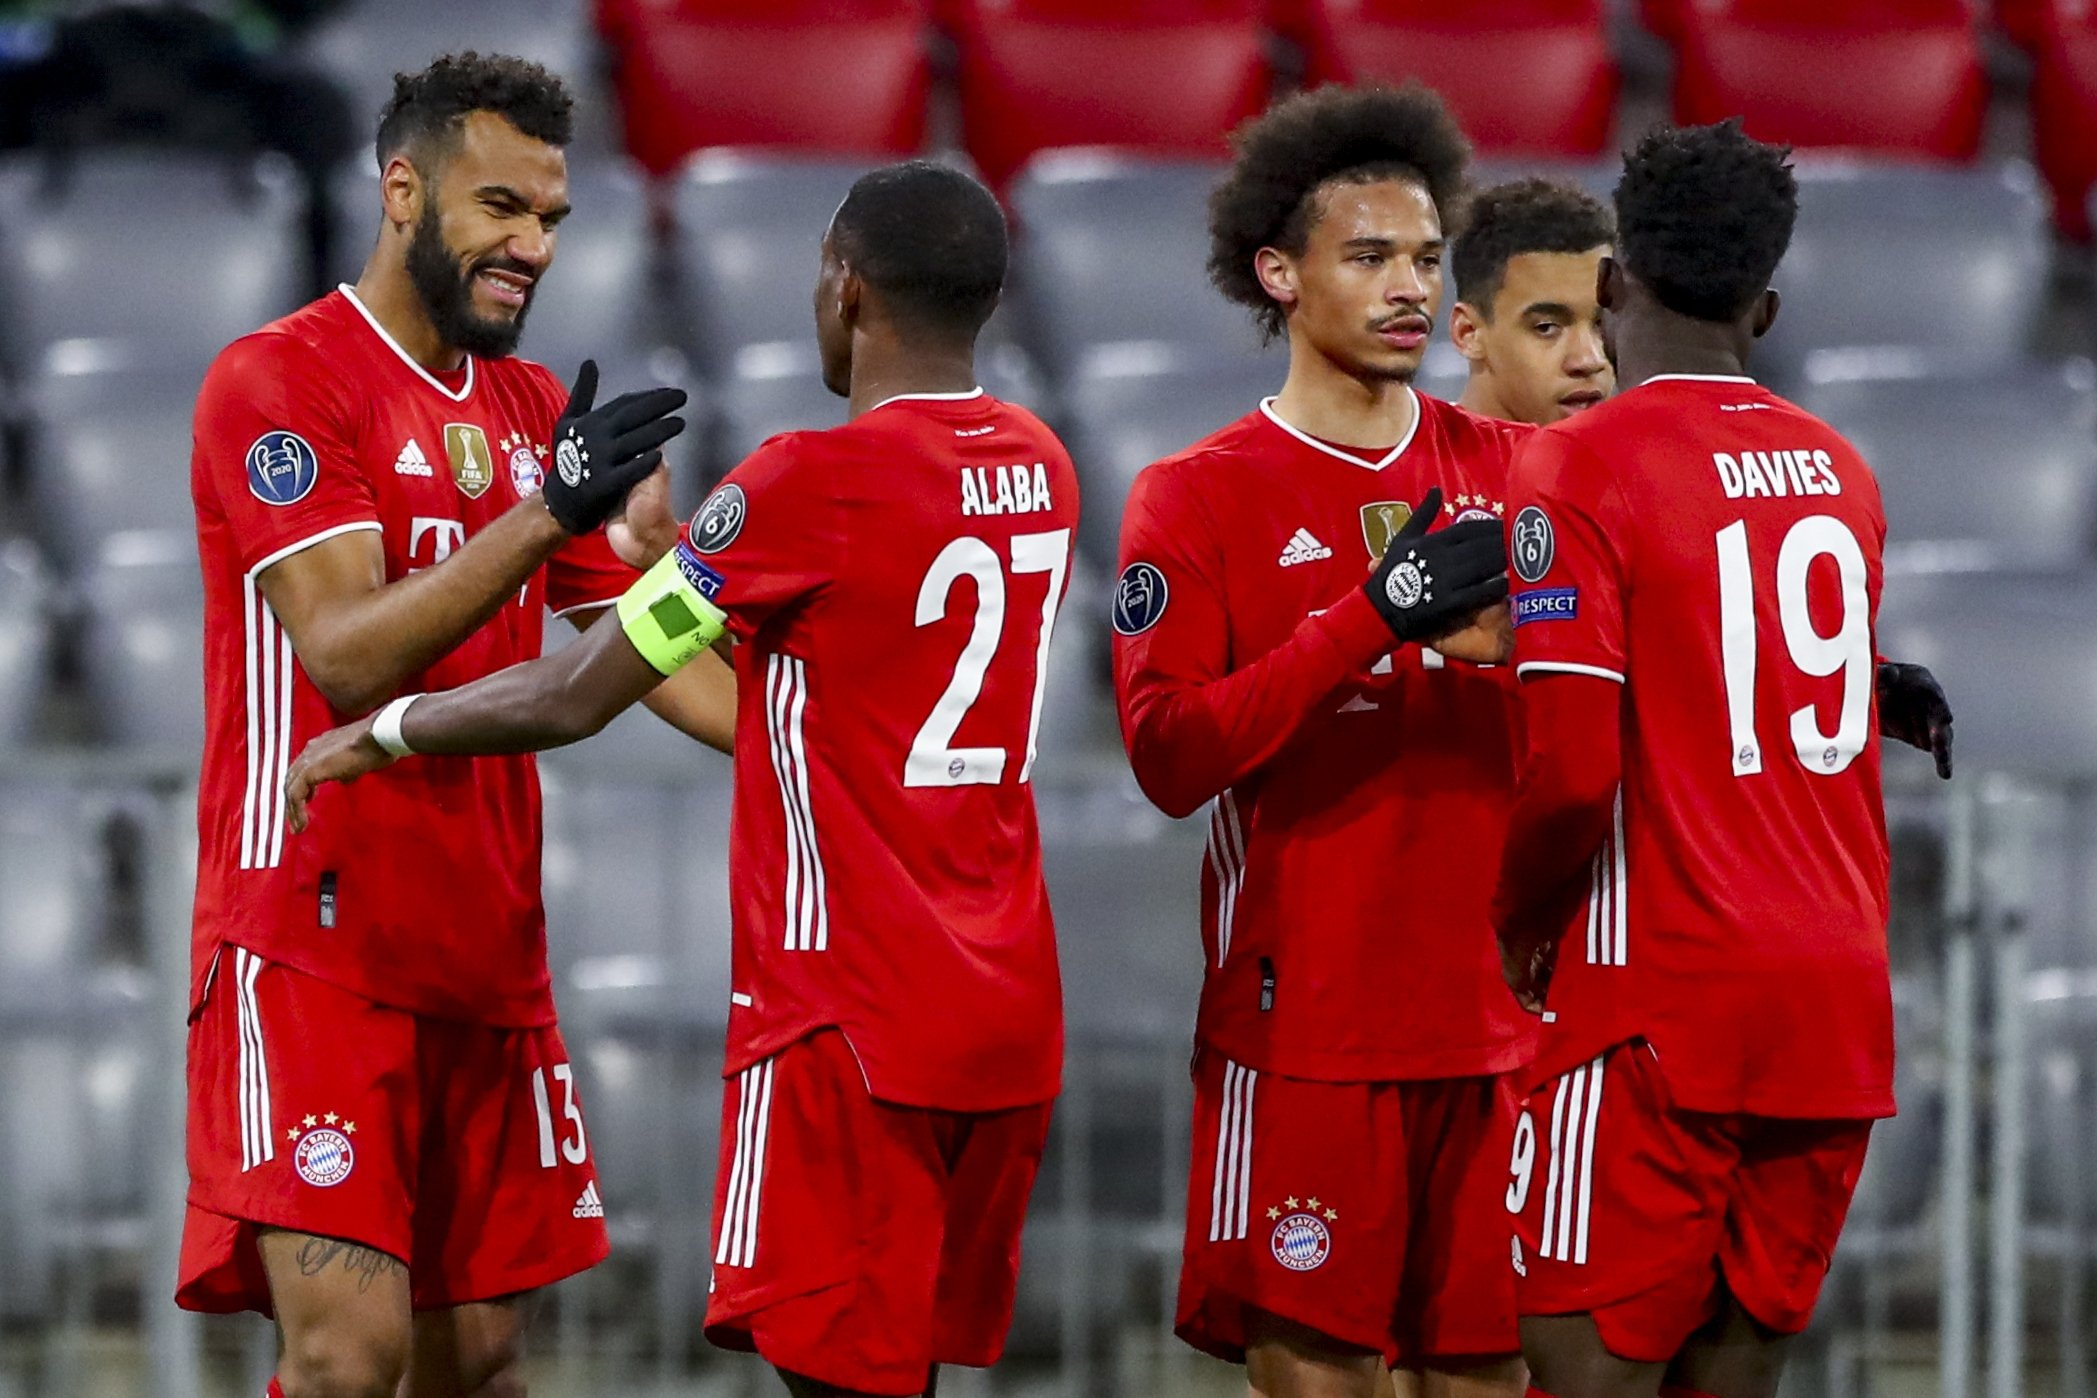 Bayern's Eric Maxim Choupo-Moting (L) celebrates a goal with his teammates during the Champions League, round of 16, second leg match in Munich, Germany, March 17, 2021. (AP Photo)